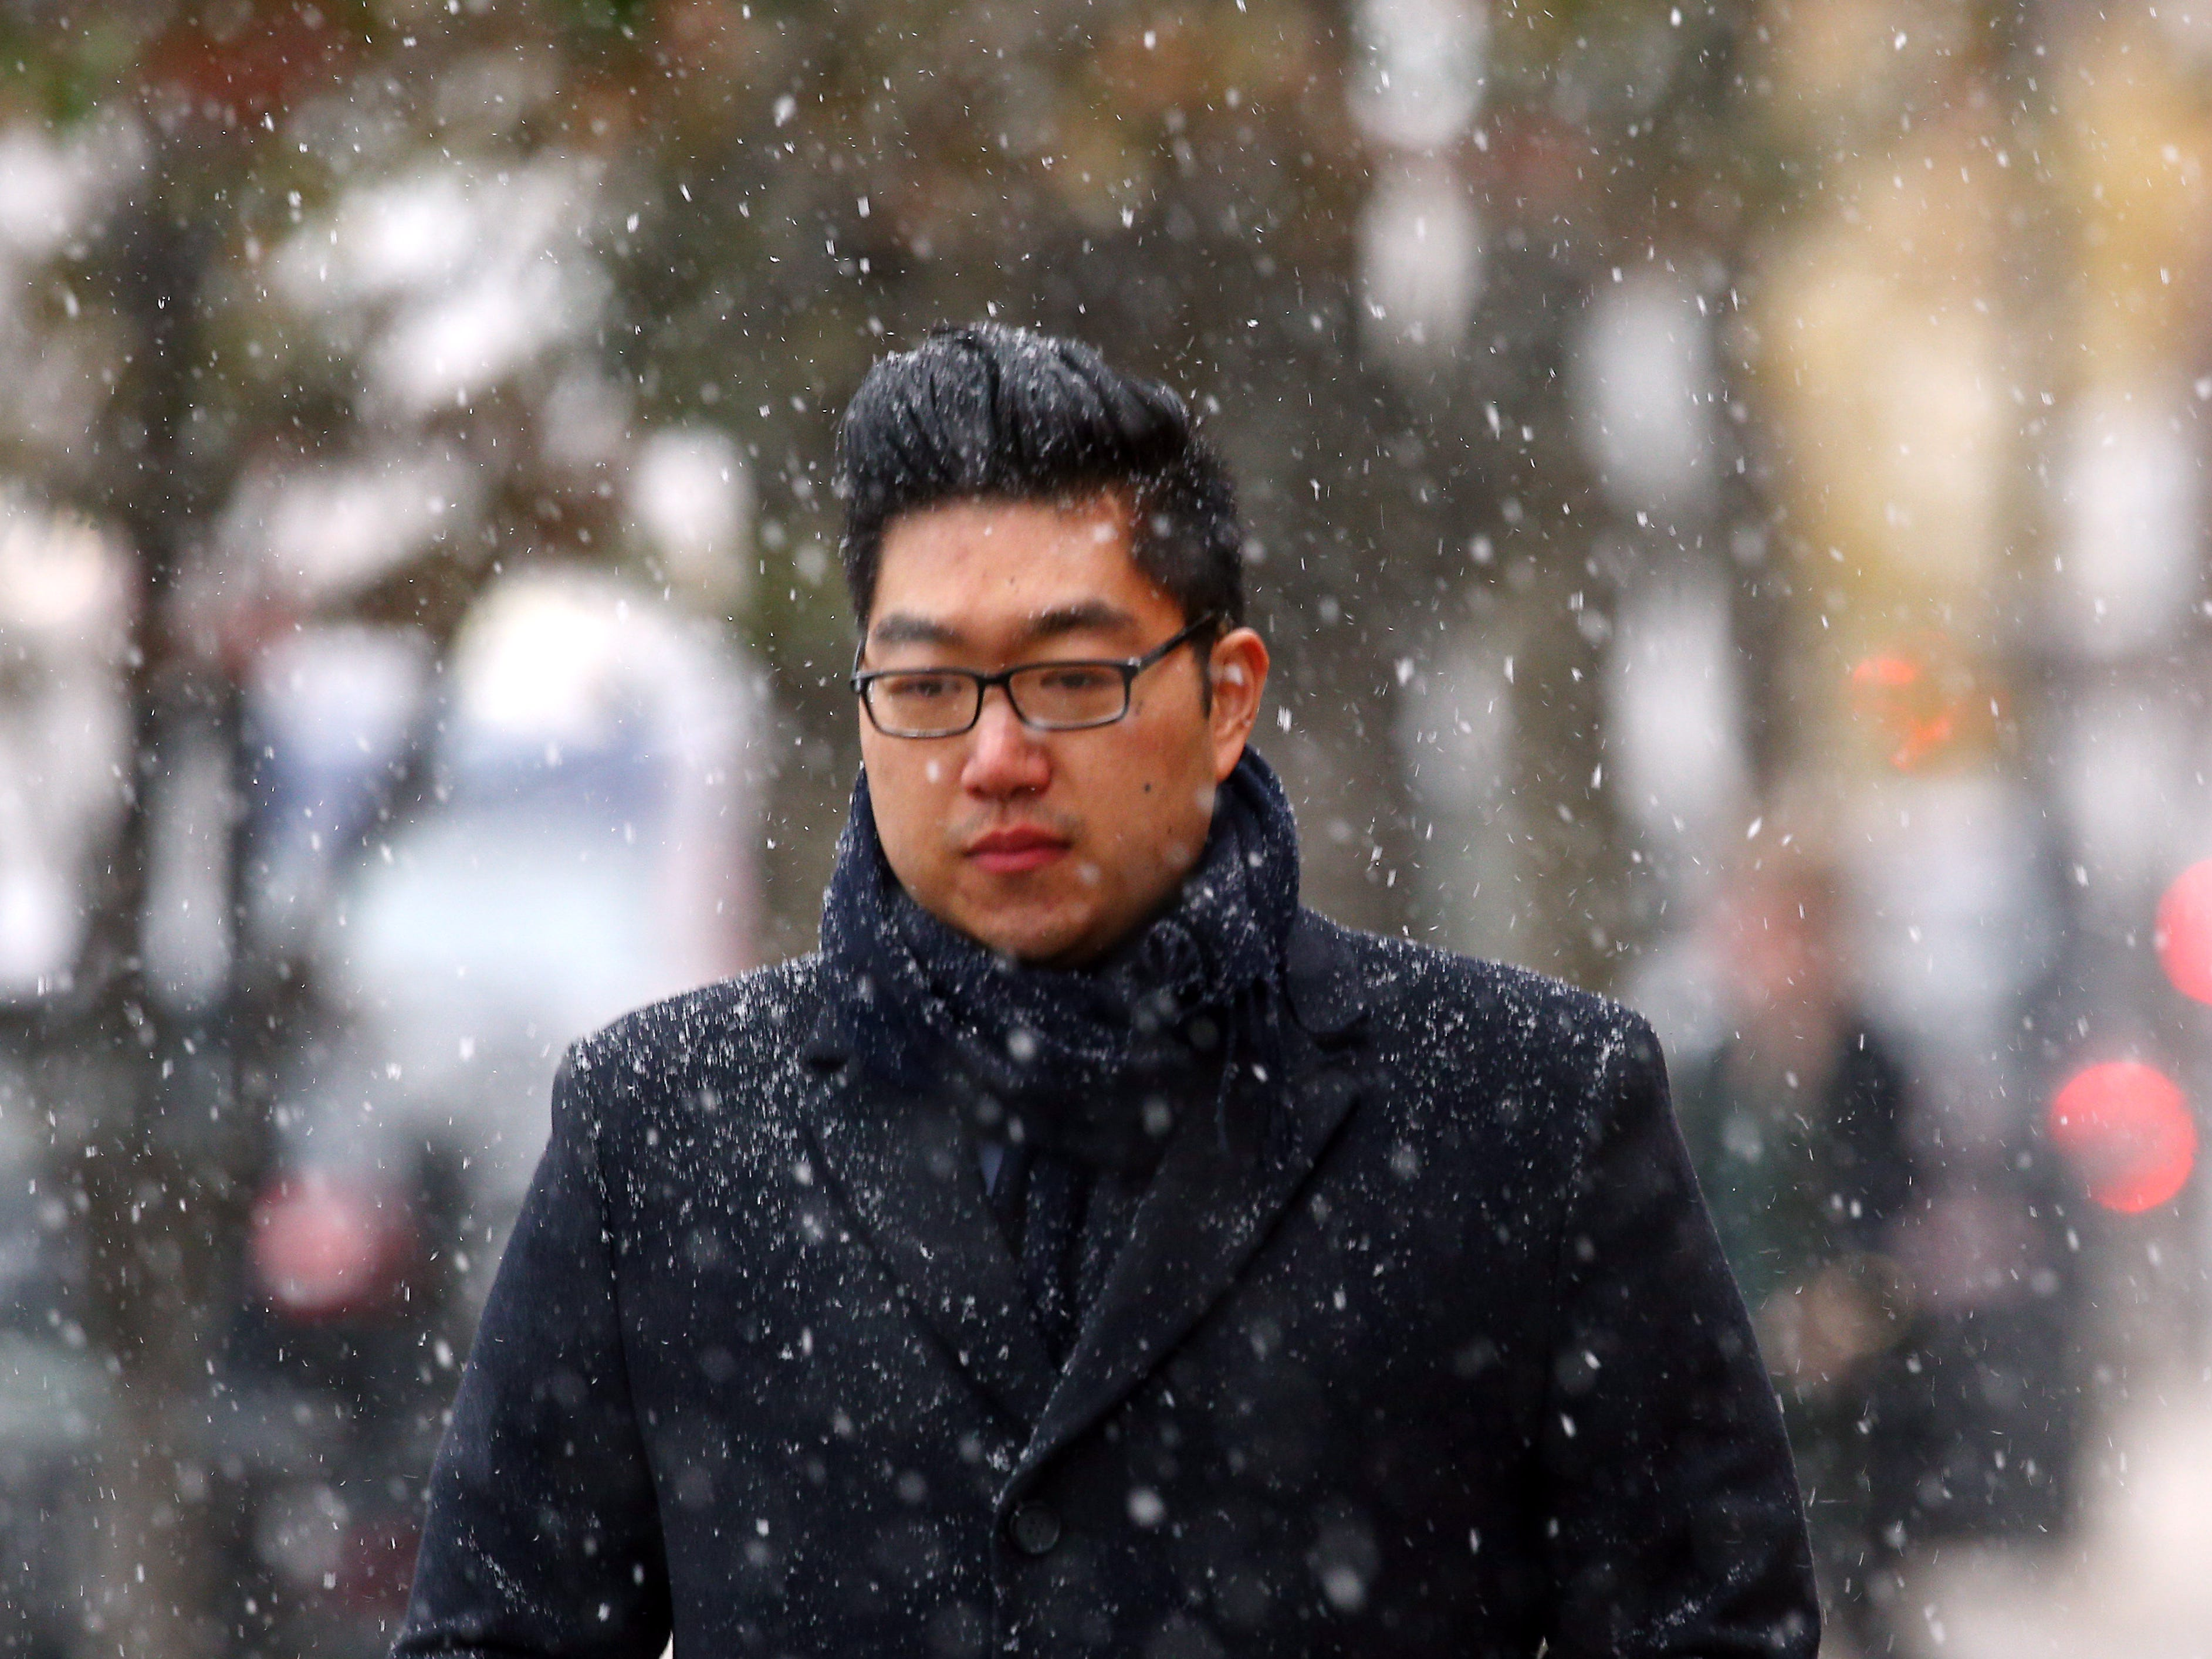 Allan Zhang of Morristown walks down South Street at the beginning of a predicted nor'easter, scheduled to dump over half a foot of snow and freezing rain on the area.  November 15, 2018, Morristown, NJ